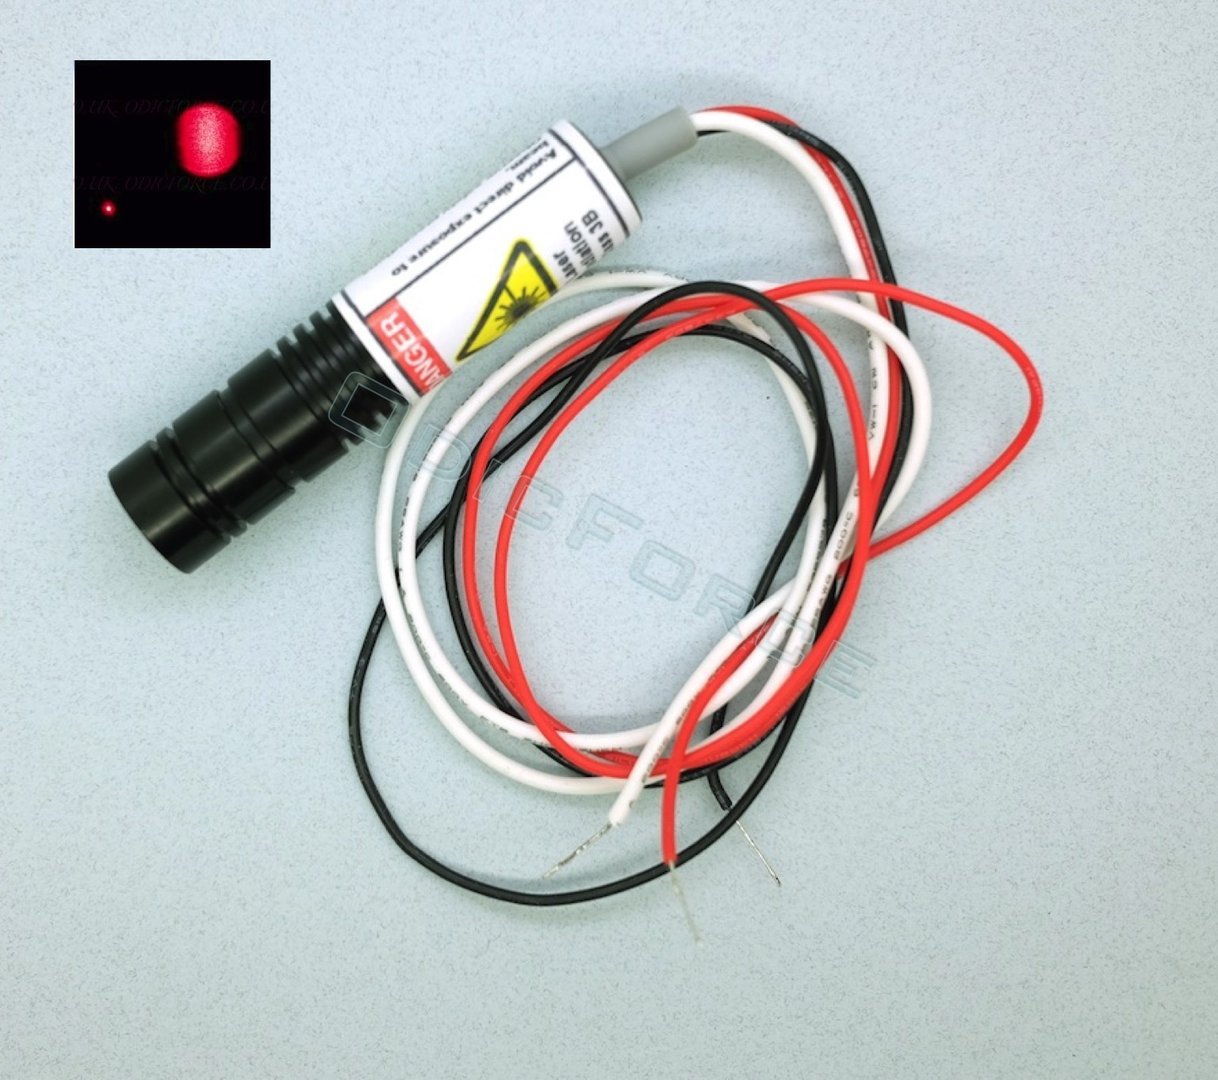 100mW Red (650nm) Laser Diode Module with Built-in 5V Driver, TTL Modulation (16mm)